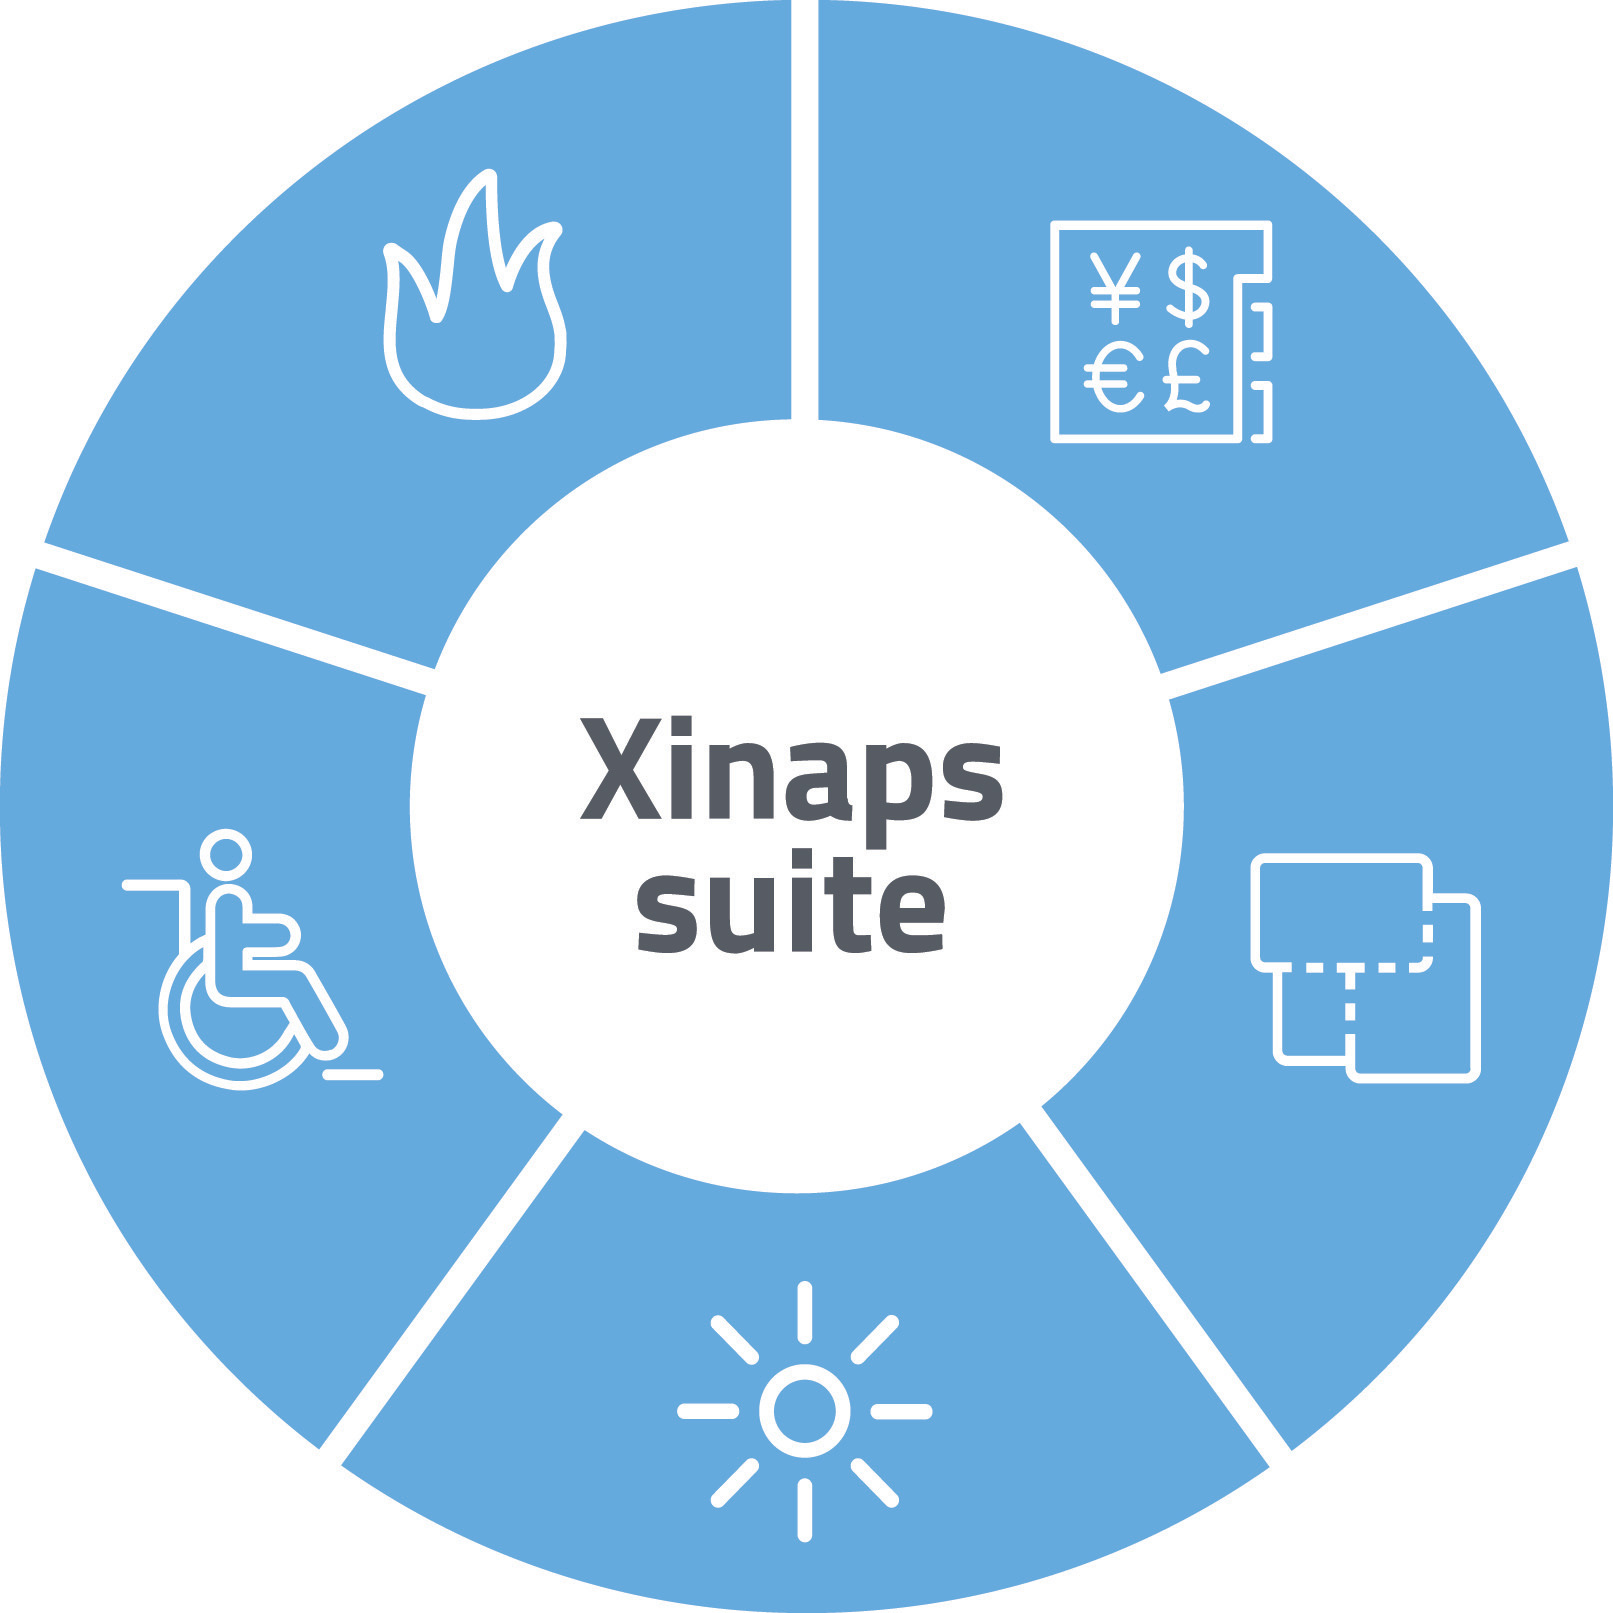 Xinaps services graphic